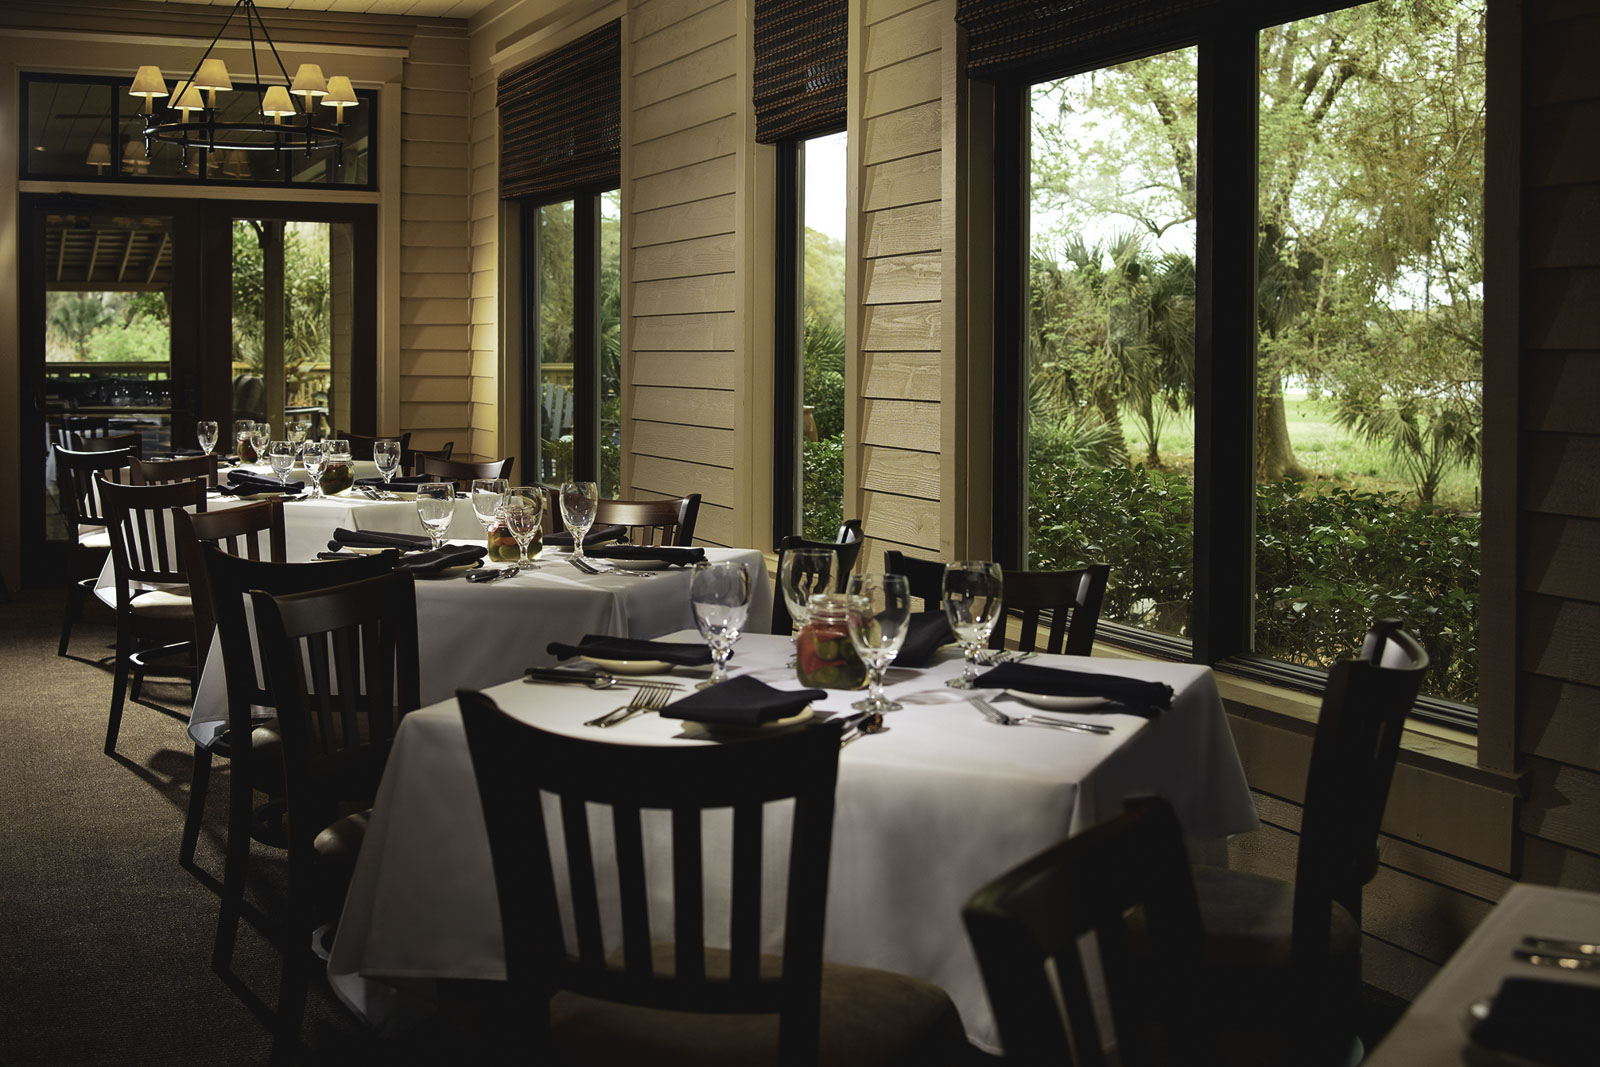 Bob's Steak & Chop House - Amelia Island, FL (Dining Room)